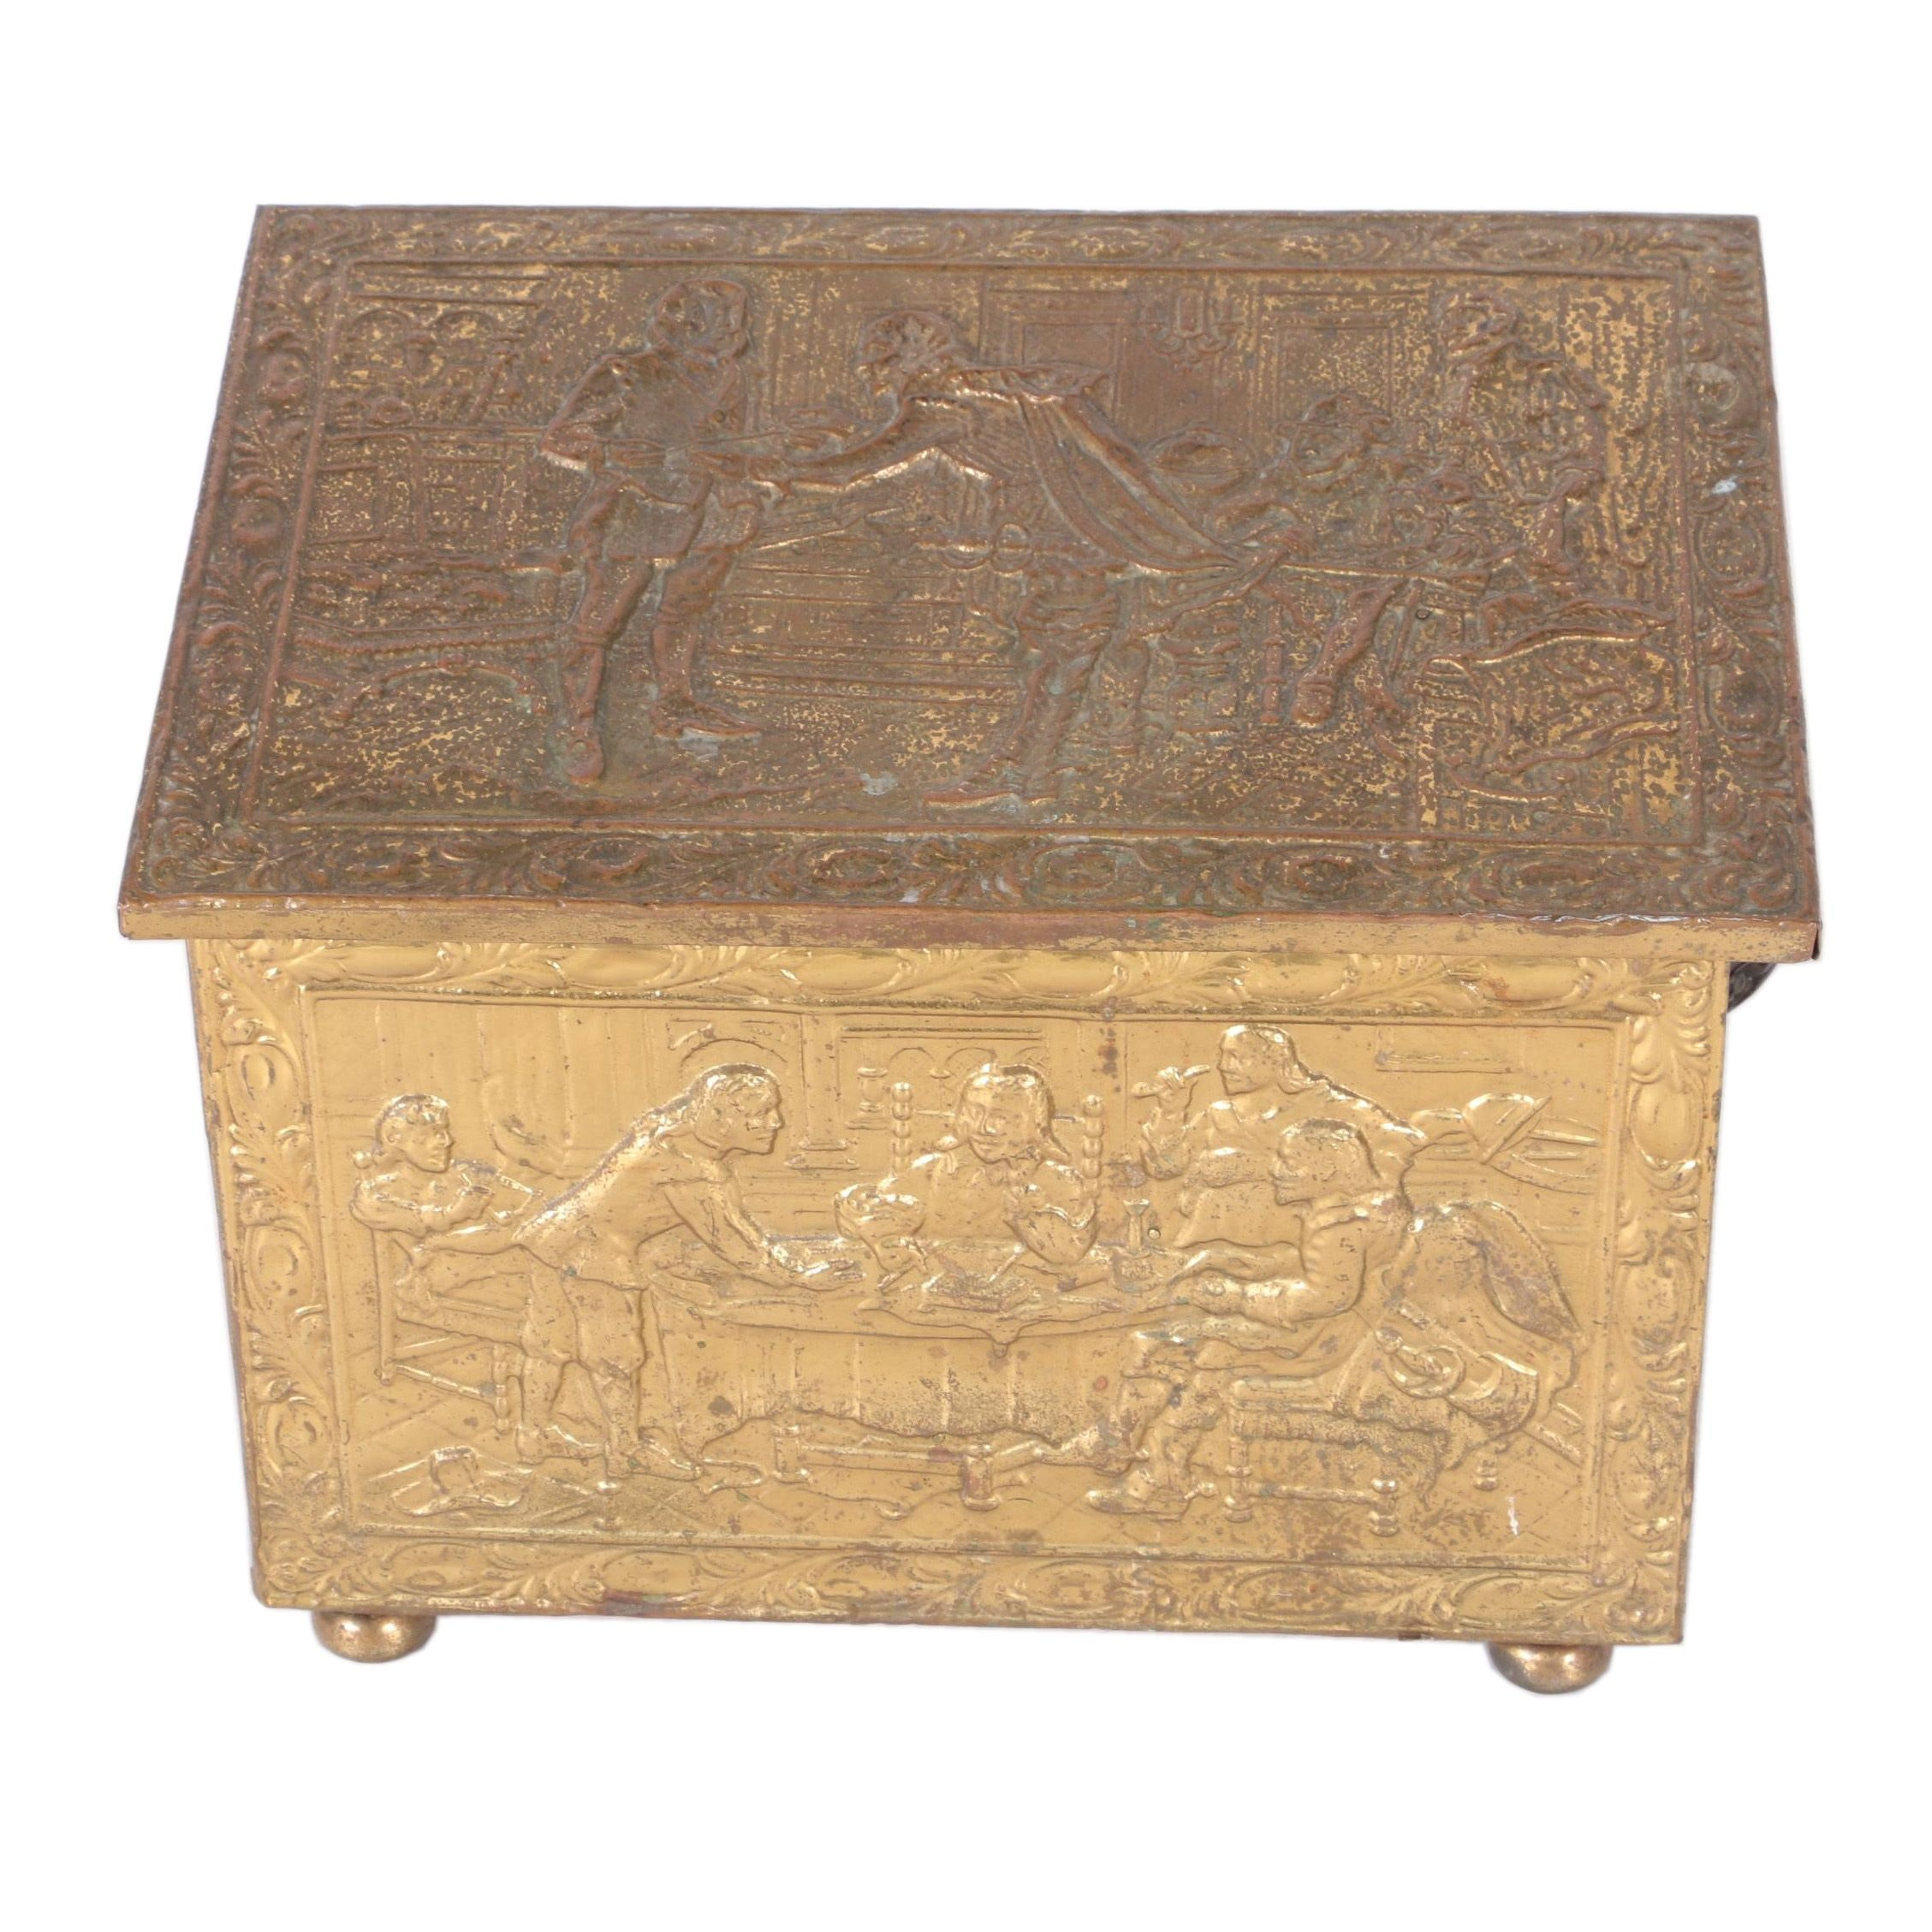 Brass Embossed Covered Wooden Box